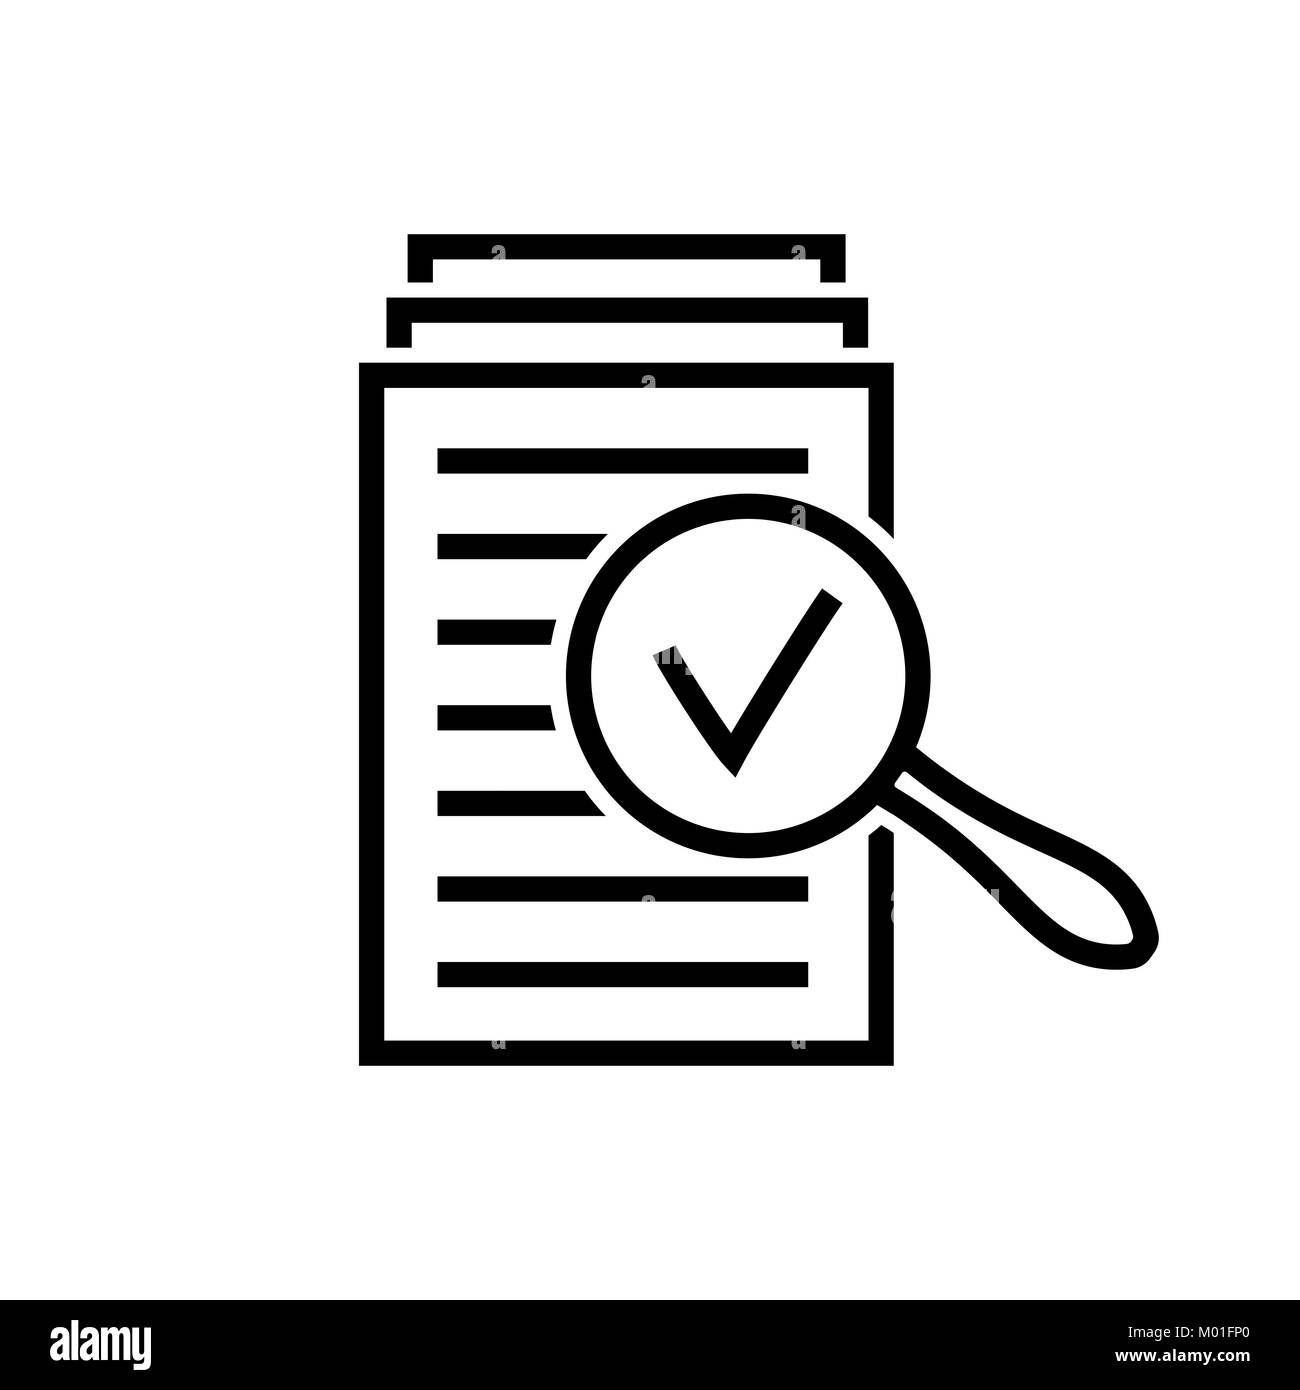 Magnifying glass icon, search documents sign - Stock Vector